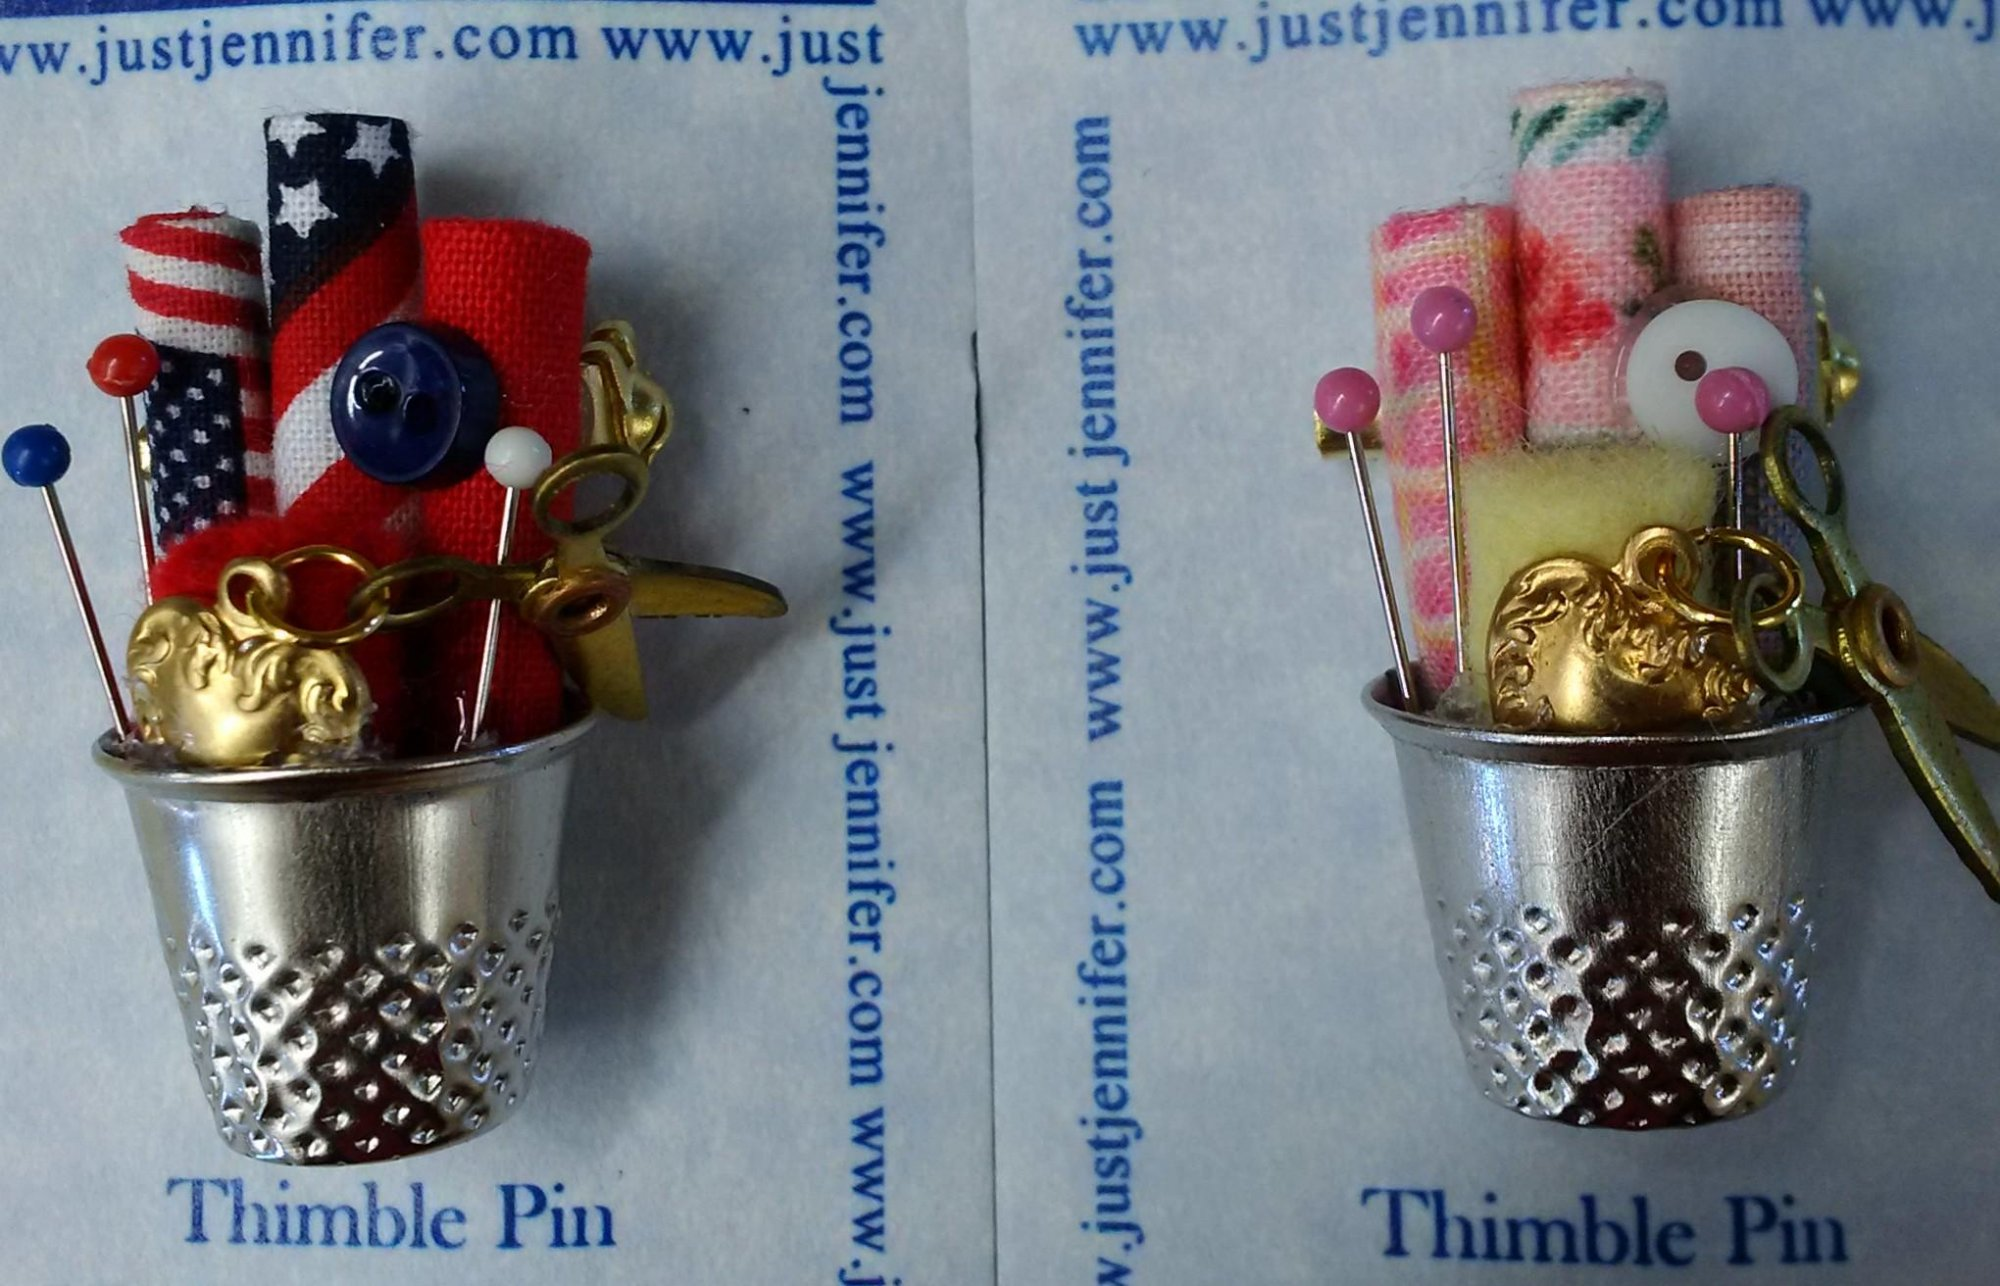 Thimble Pin by Just Jennifer